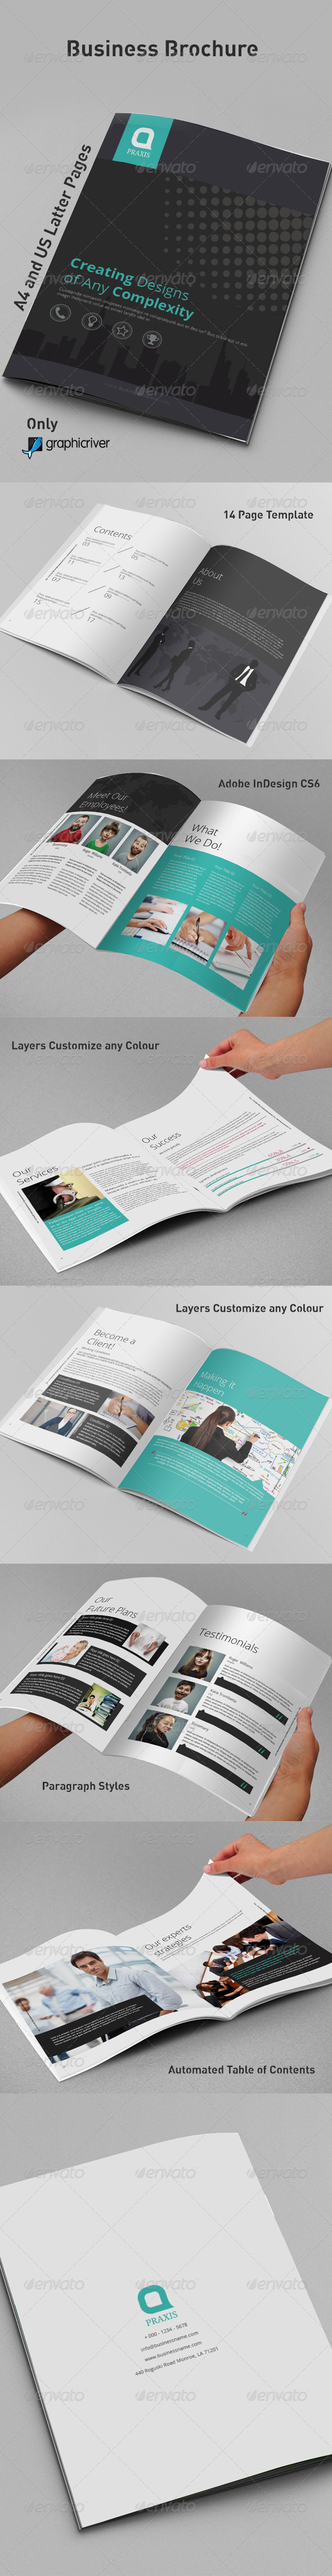 GraphicRiver Business Brochure 8610227